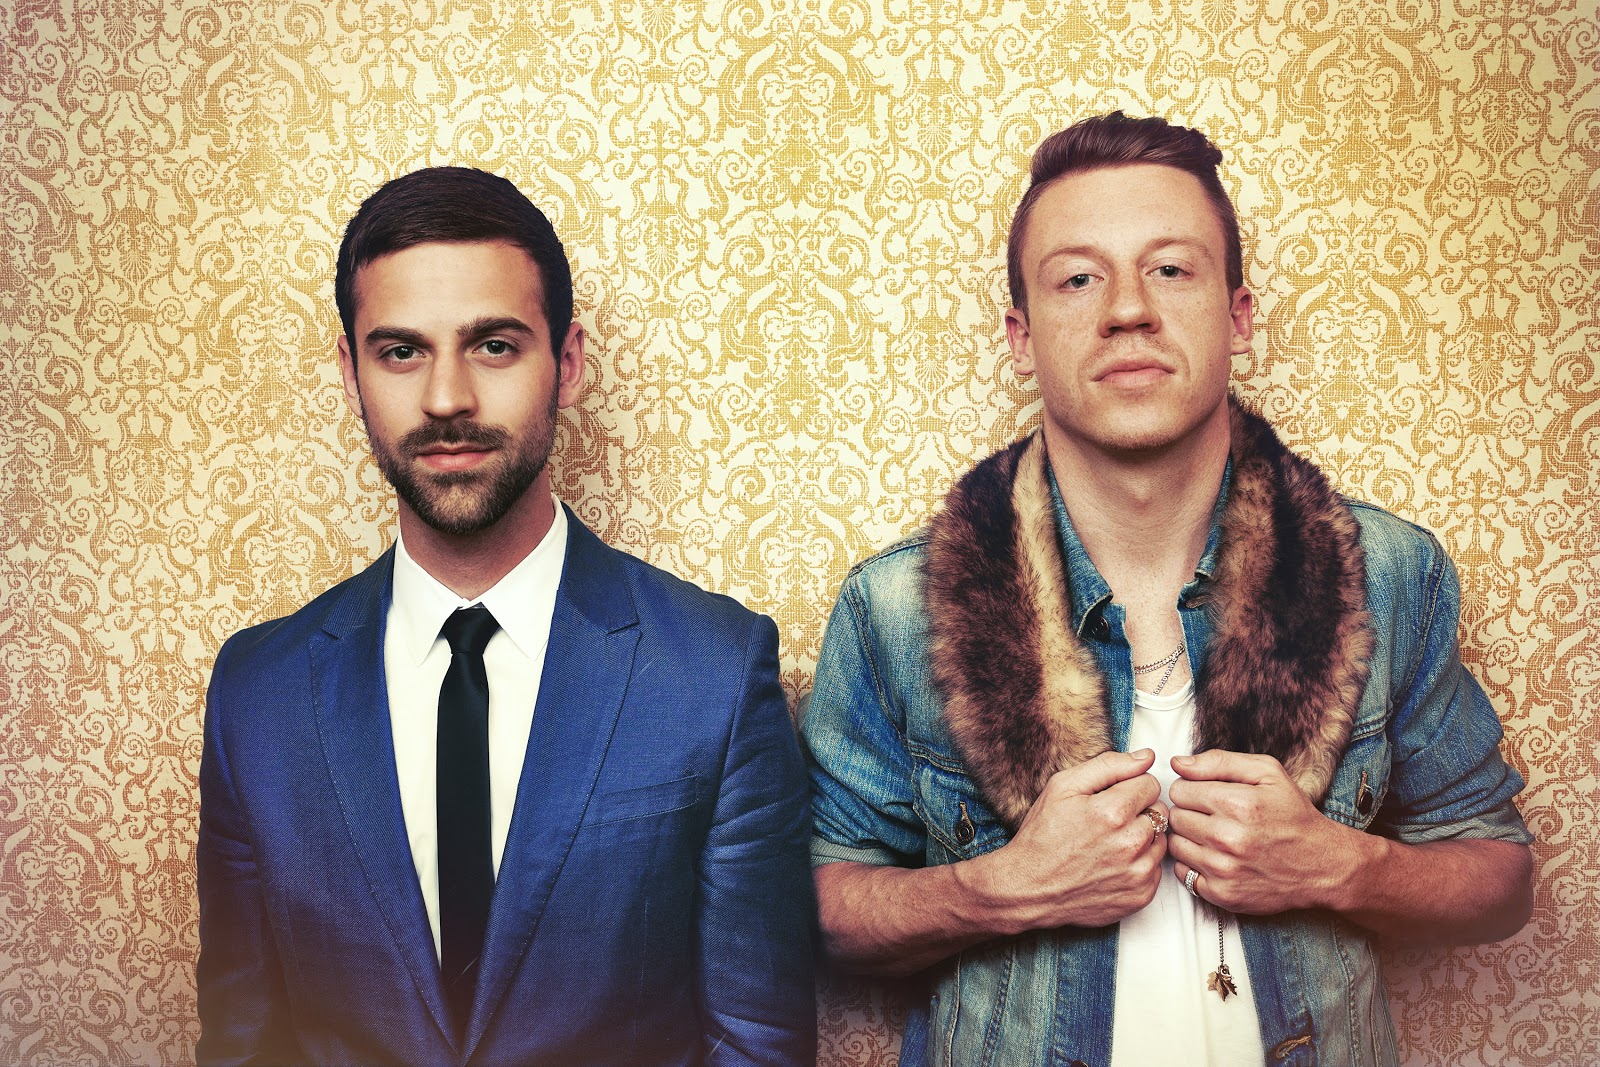 Fat Buddha Store: Music Monday - Macklemore!